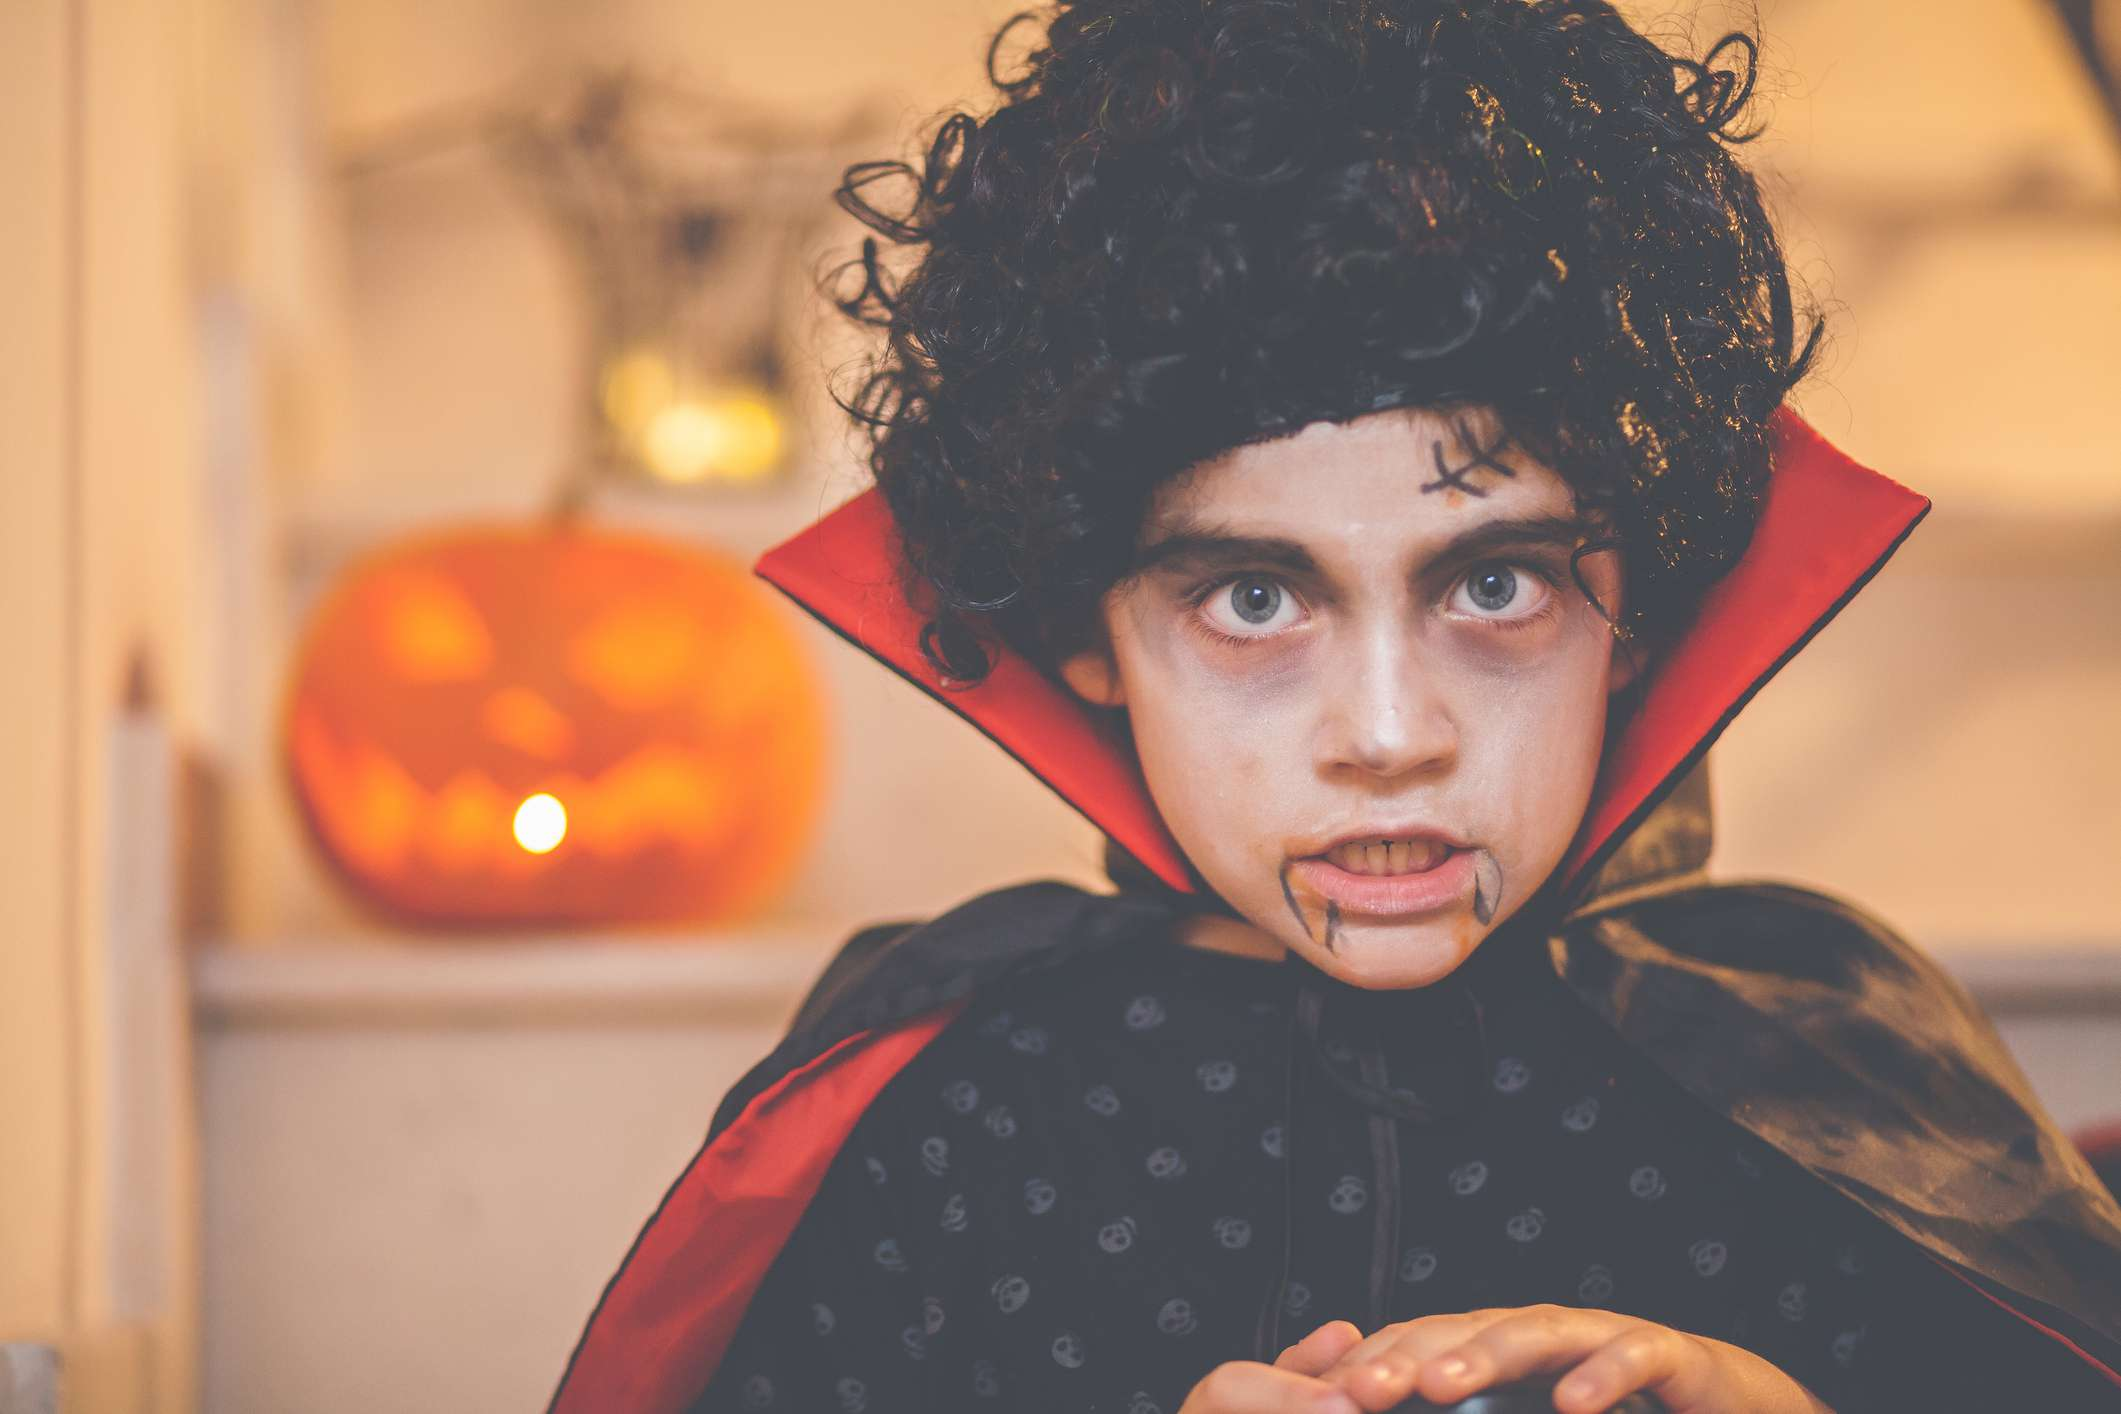 Child wearing dracula vampire costume